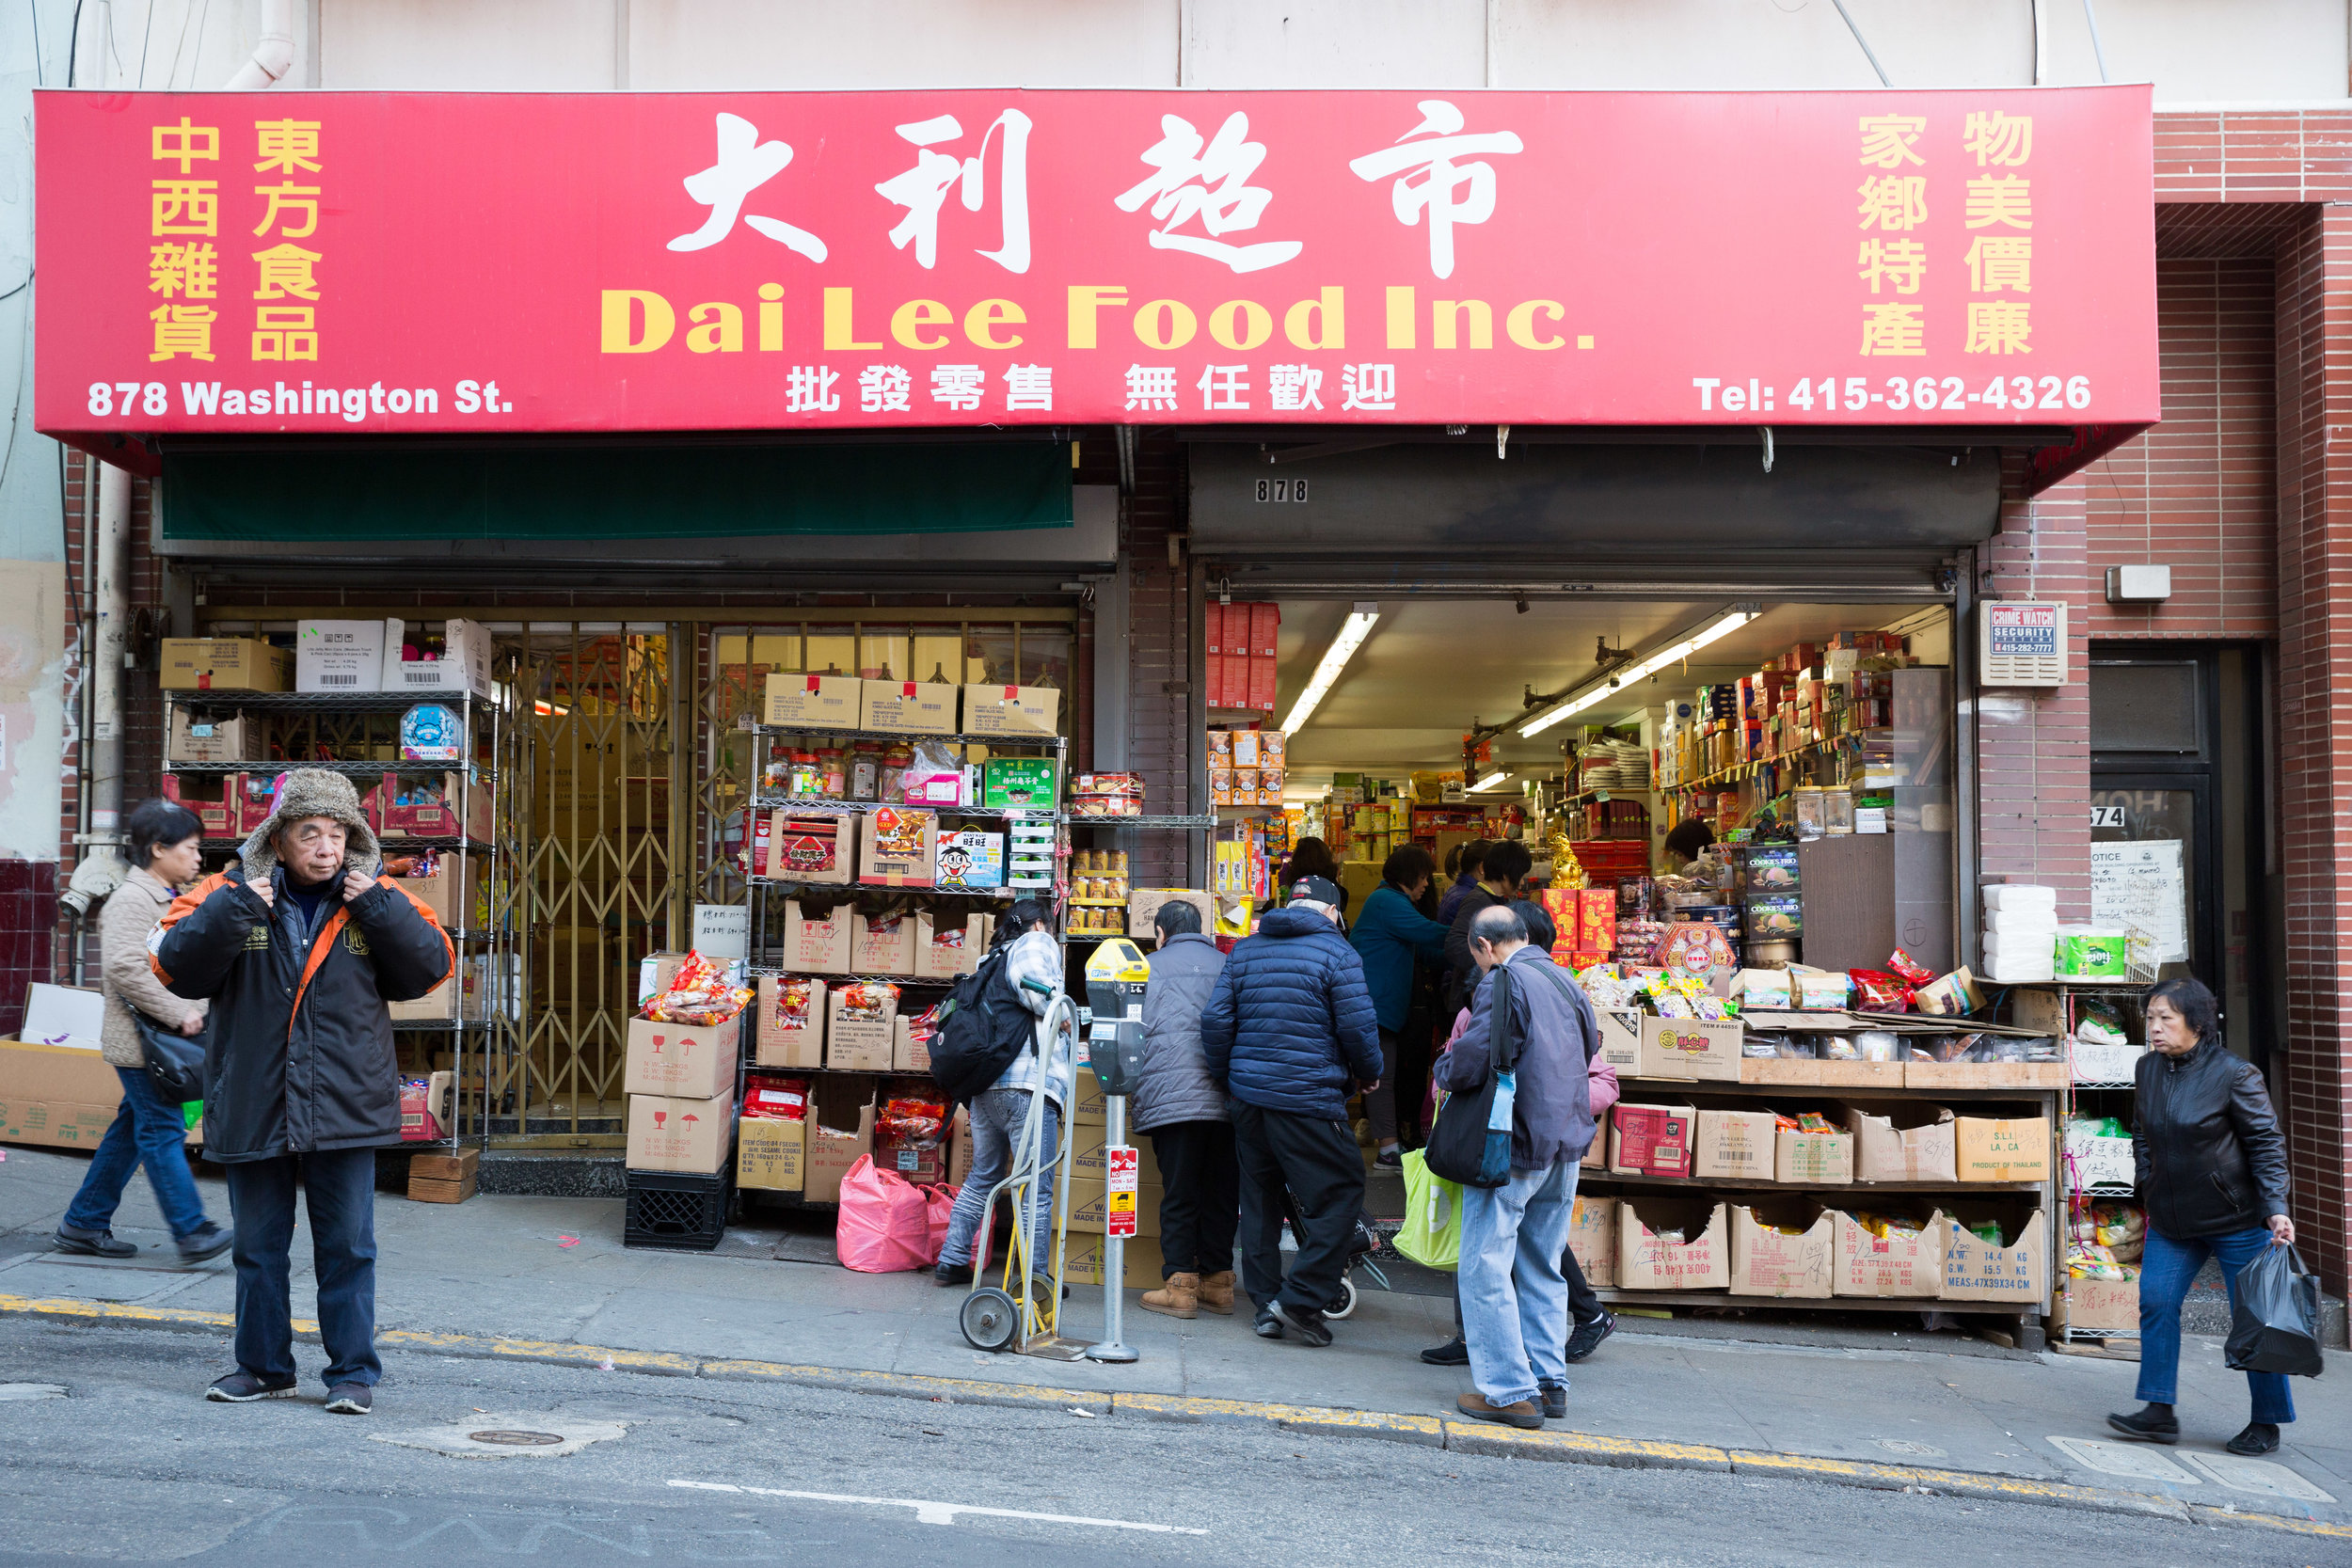 Dai Lee Food Inc. 大利超市